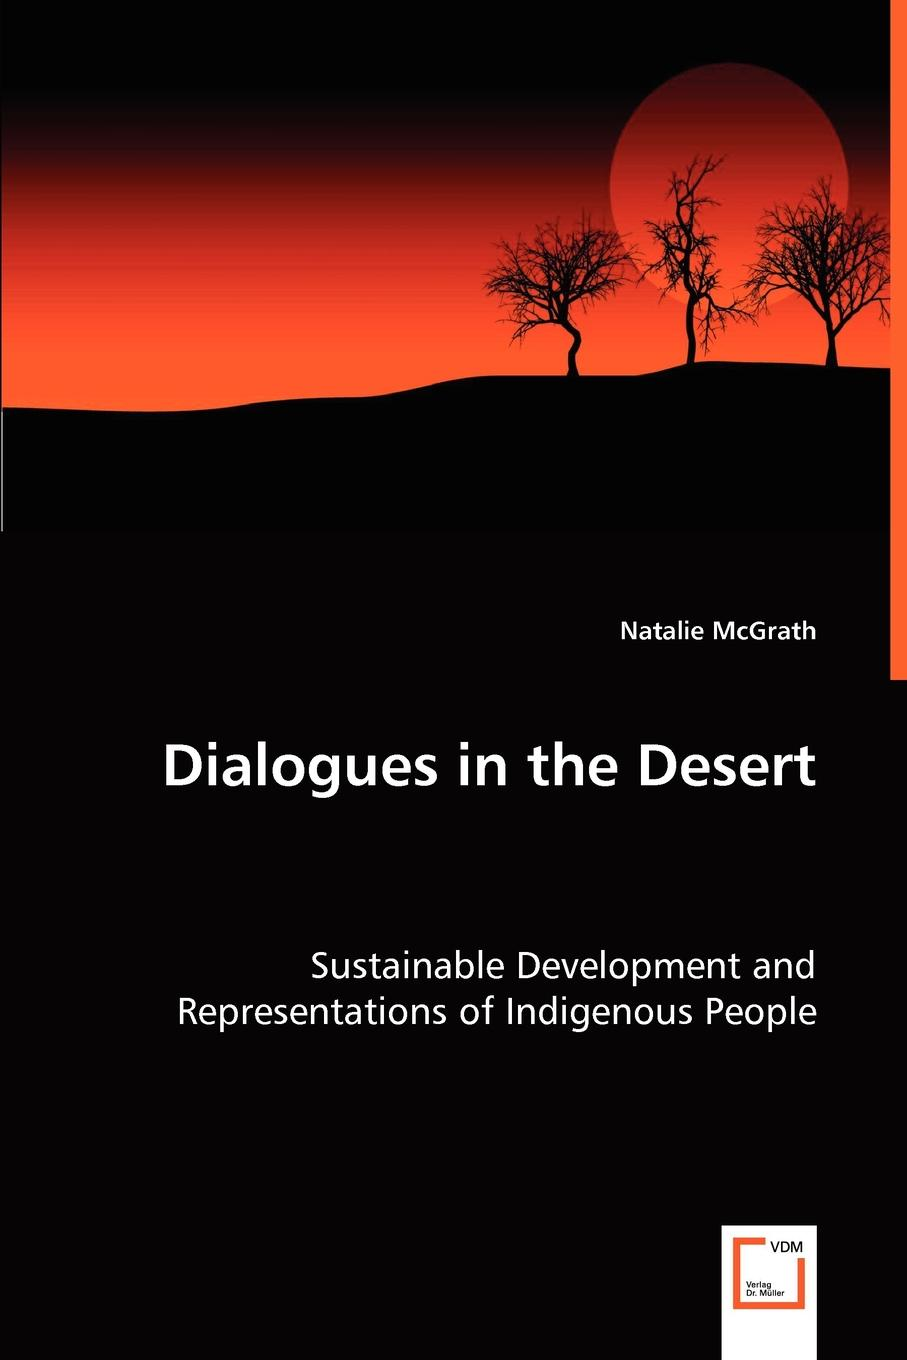 Natalie McGrath Dialogues in the Desert - Sustainable Development and Representations of Indigenous People aging problems of indigenous people of bangladesh